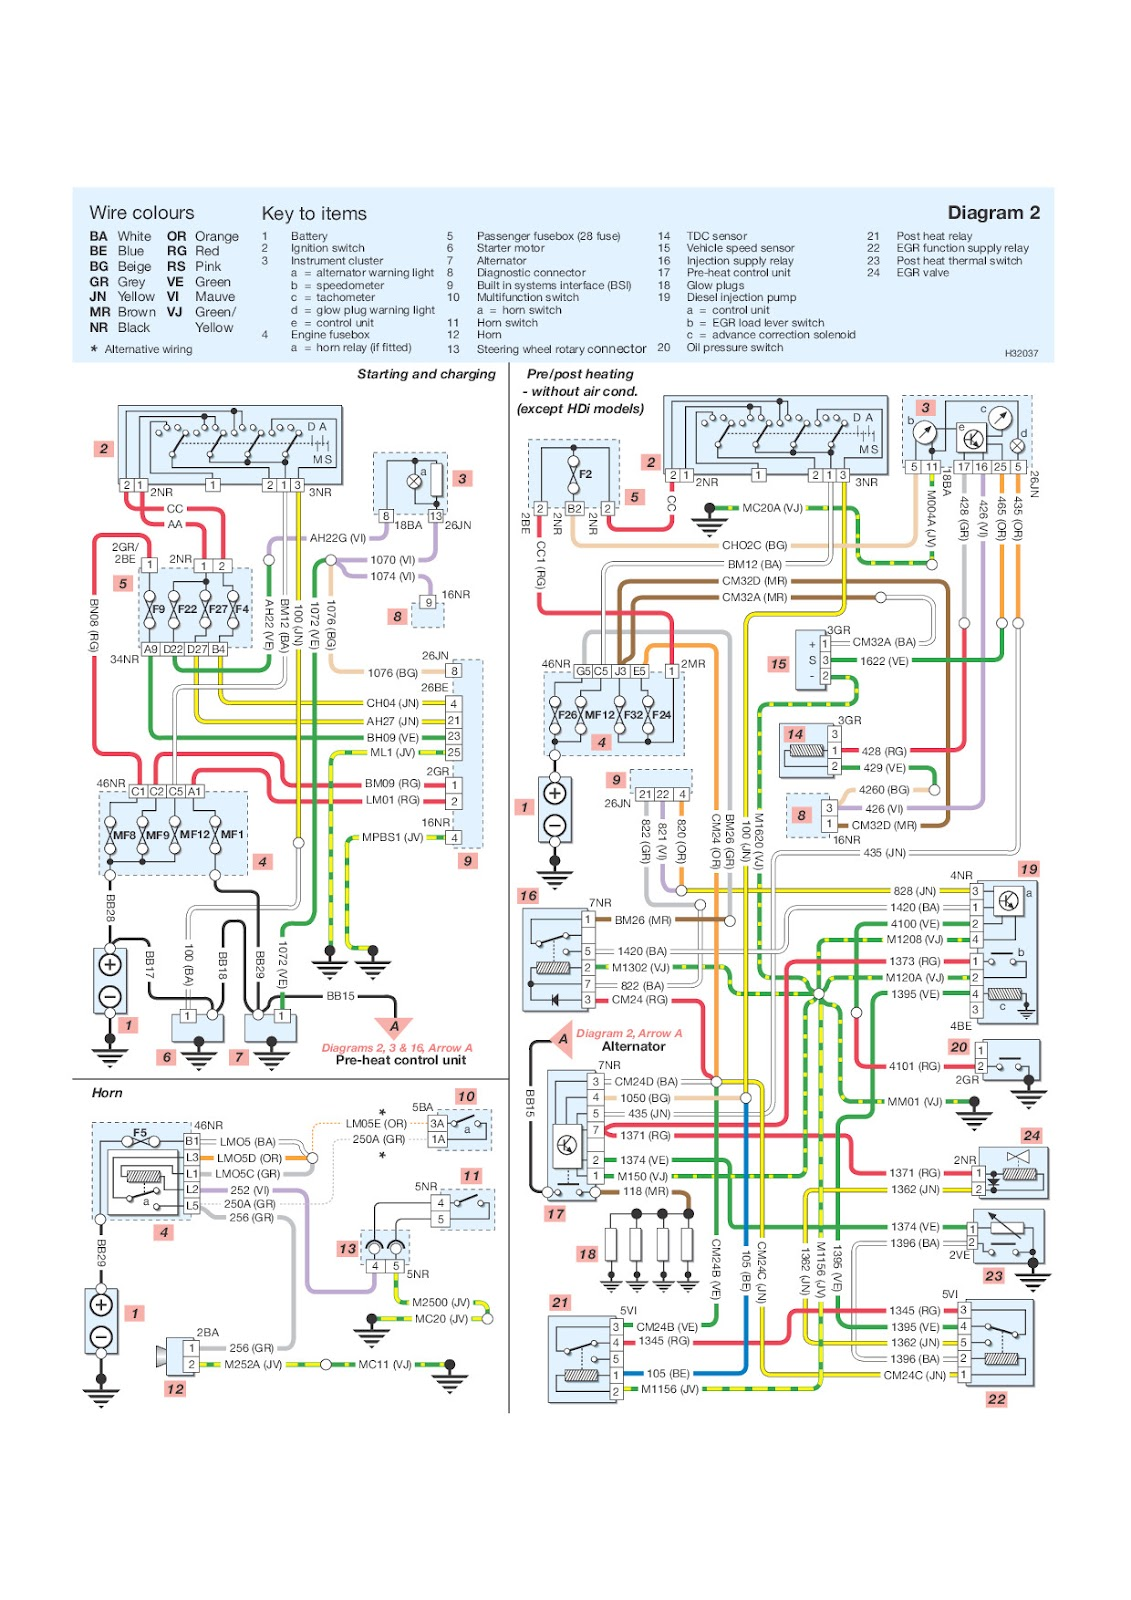 peugeot+206 1 peugeot 206 radio wiring diagram colours wiring diagram simonand ba fuse box diagram at gsmportal.co